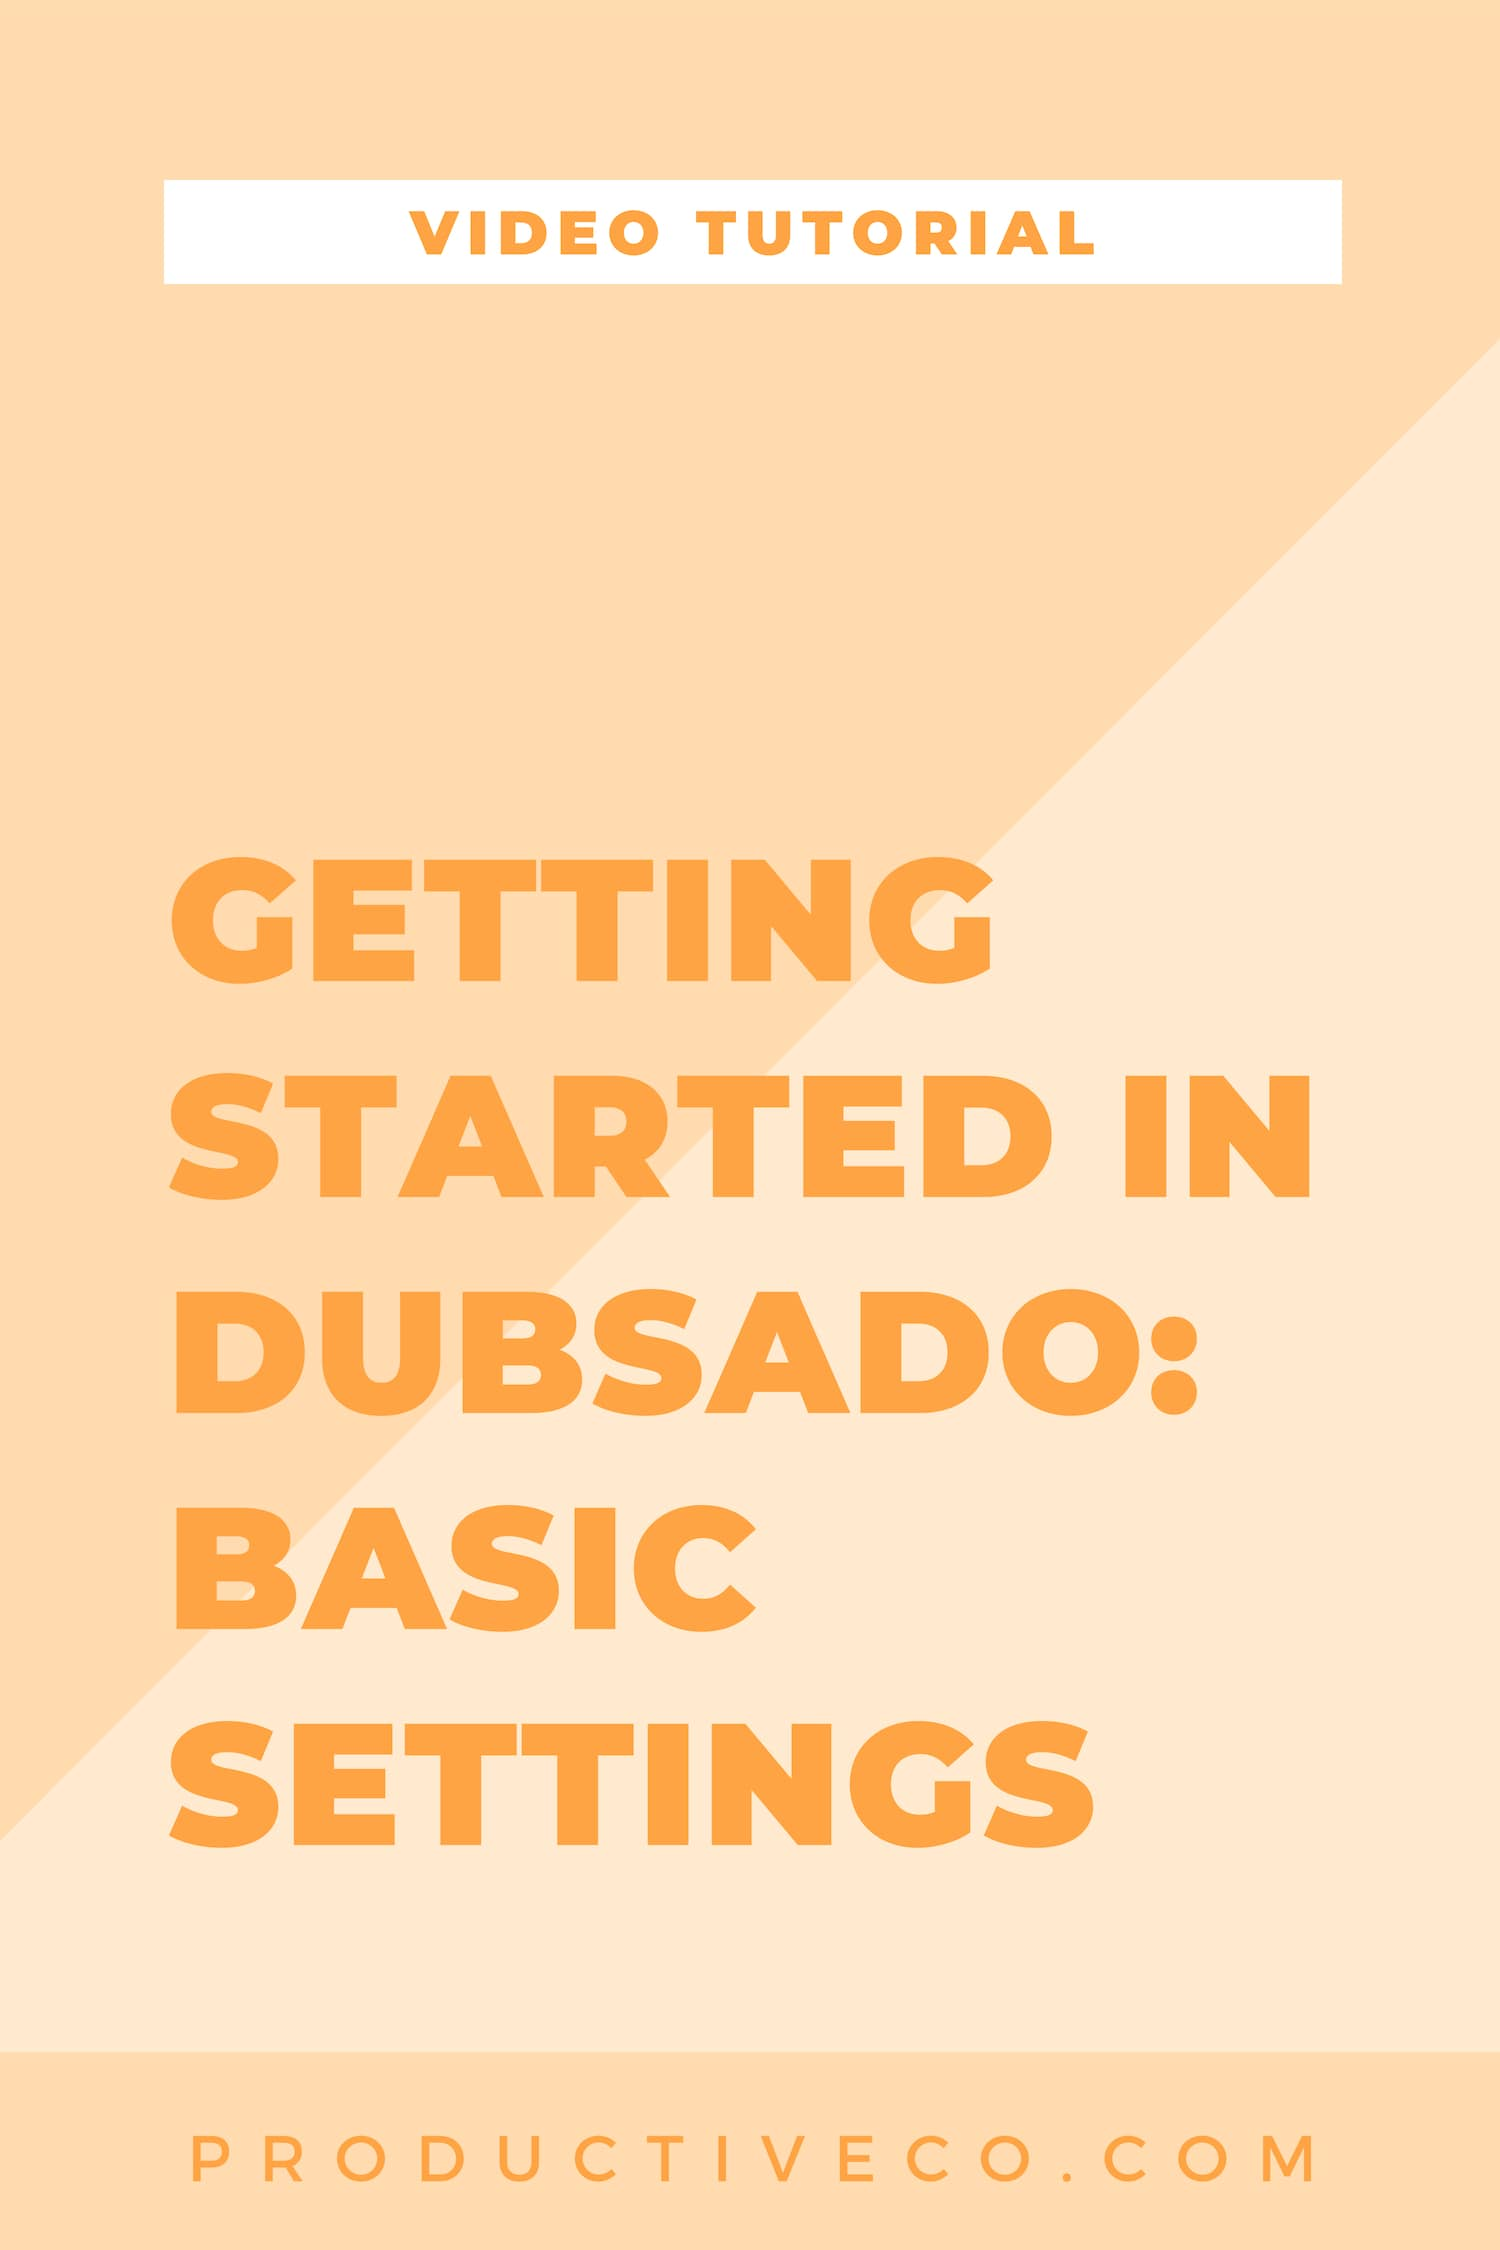 Get started using Dubsado today by getting your settings selected in the next 20 minutes.